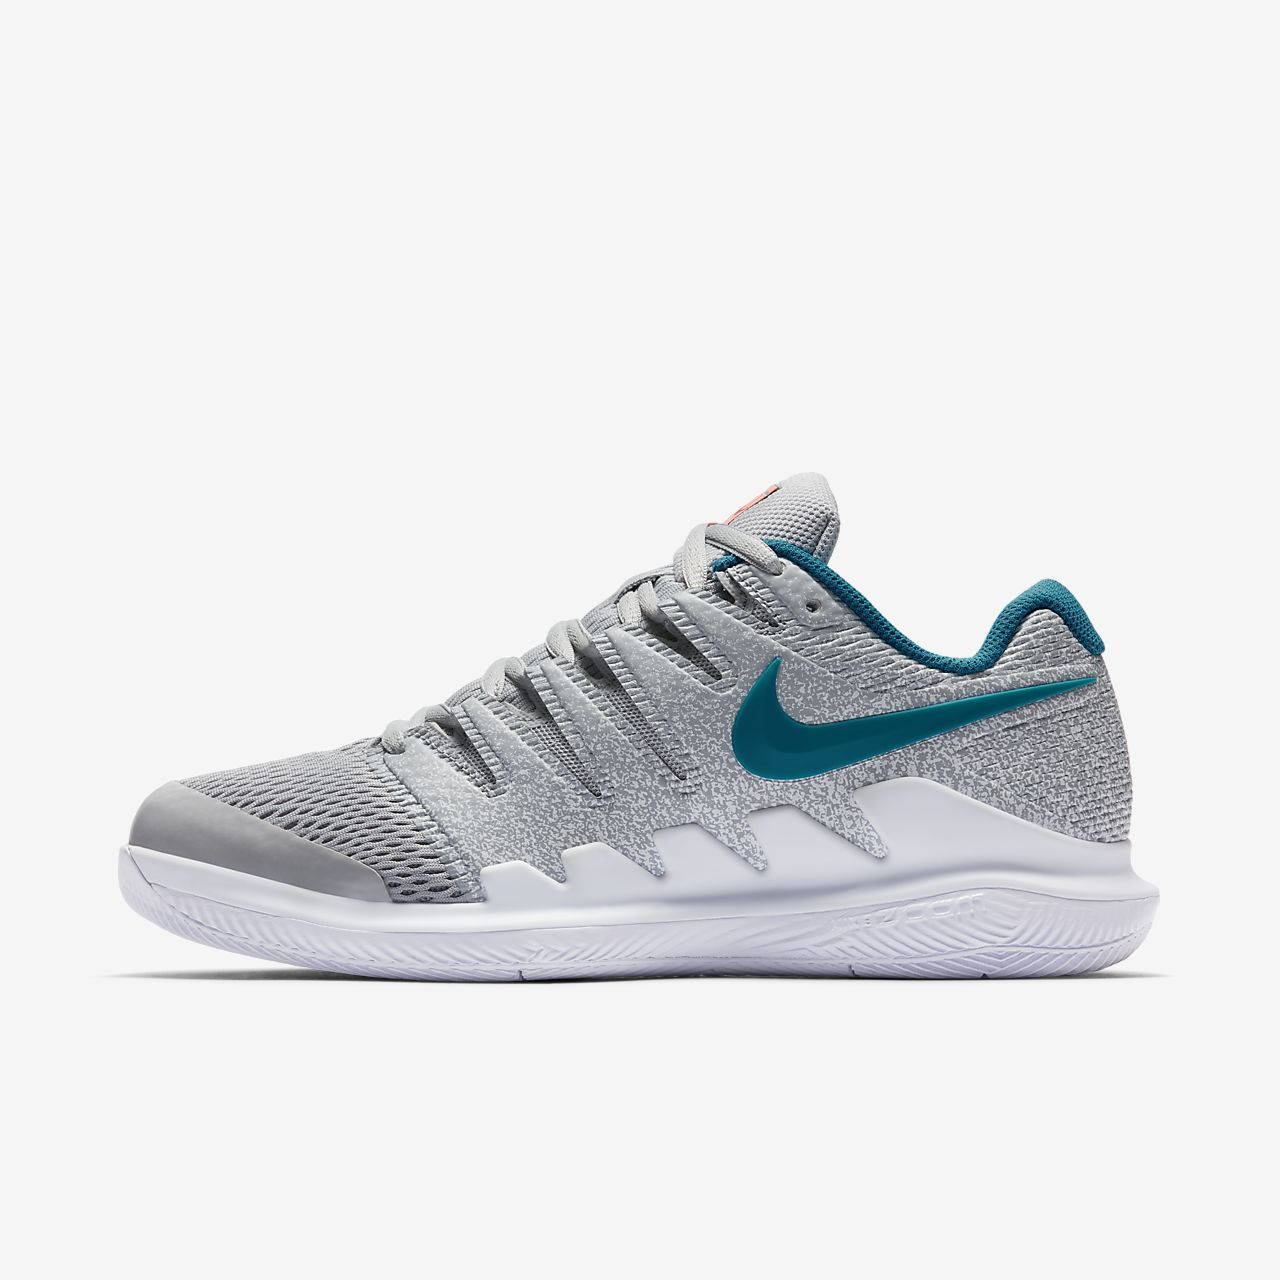 Nikecourt Air Zoom Vapor X Women S Hard Court Tennis Shoe Nike Com Womens Tennis Shoes Air Zoom Tennis Shoes